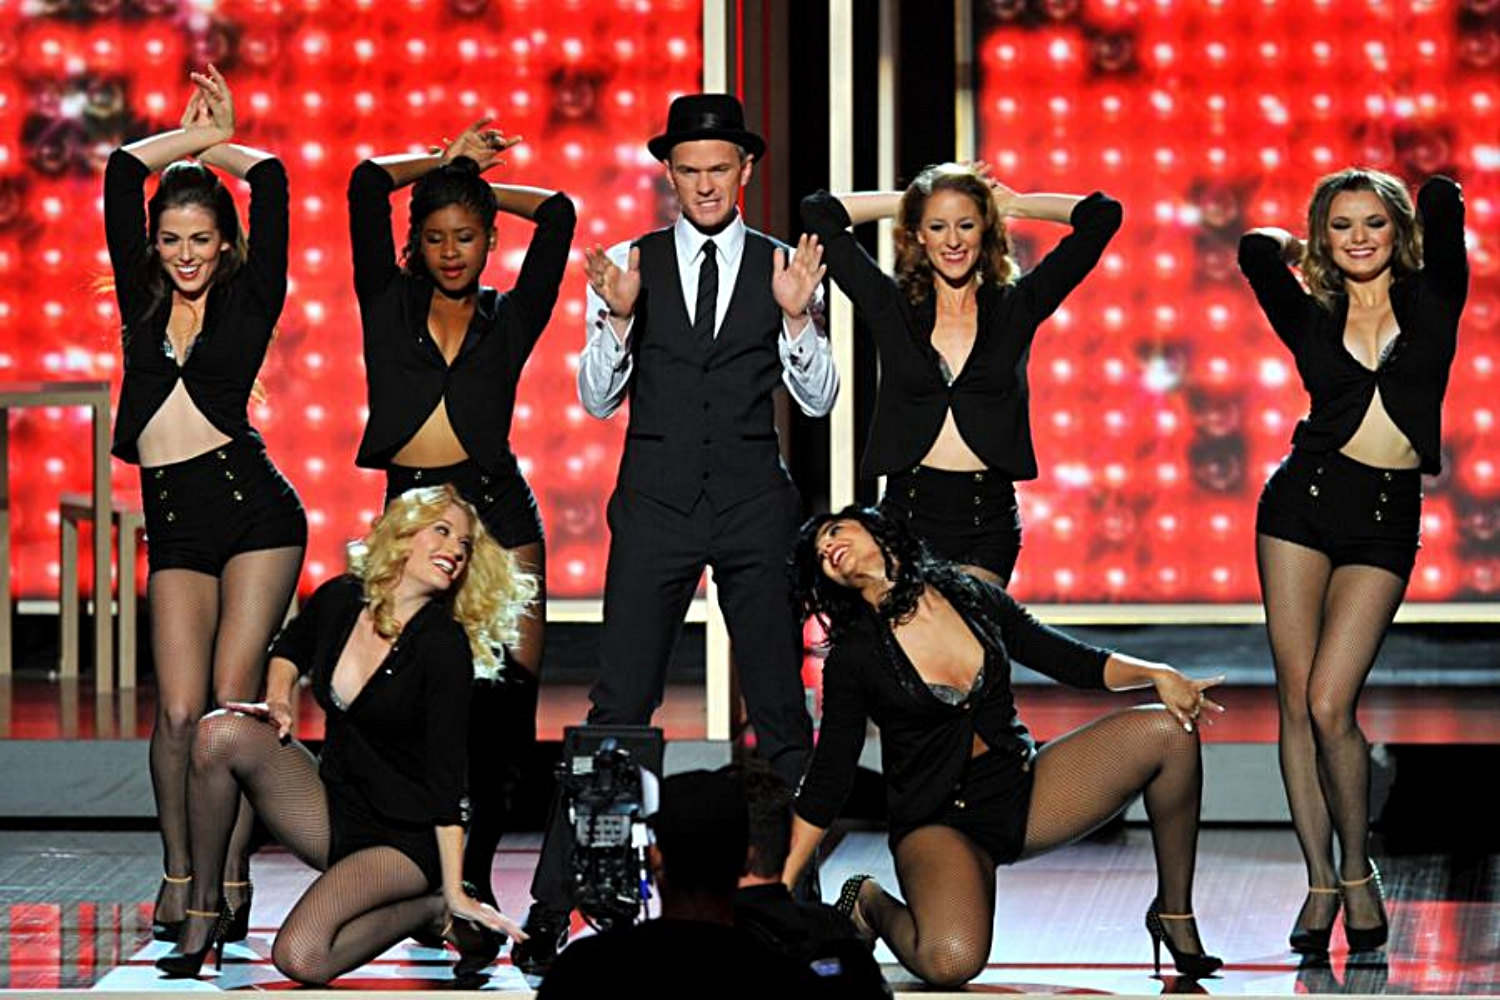 65TH EMMYS - OUTSTANDING CHOREOGRAPHY PERFORMANCE